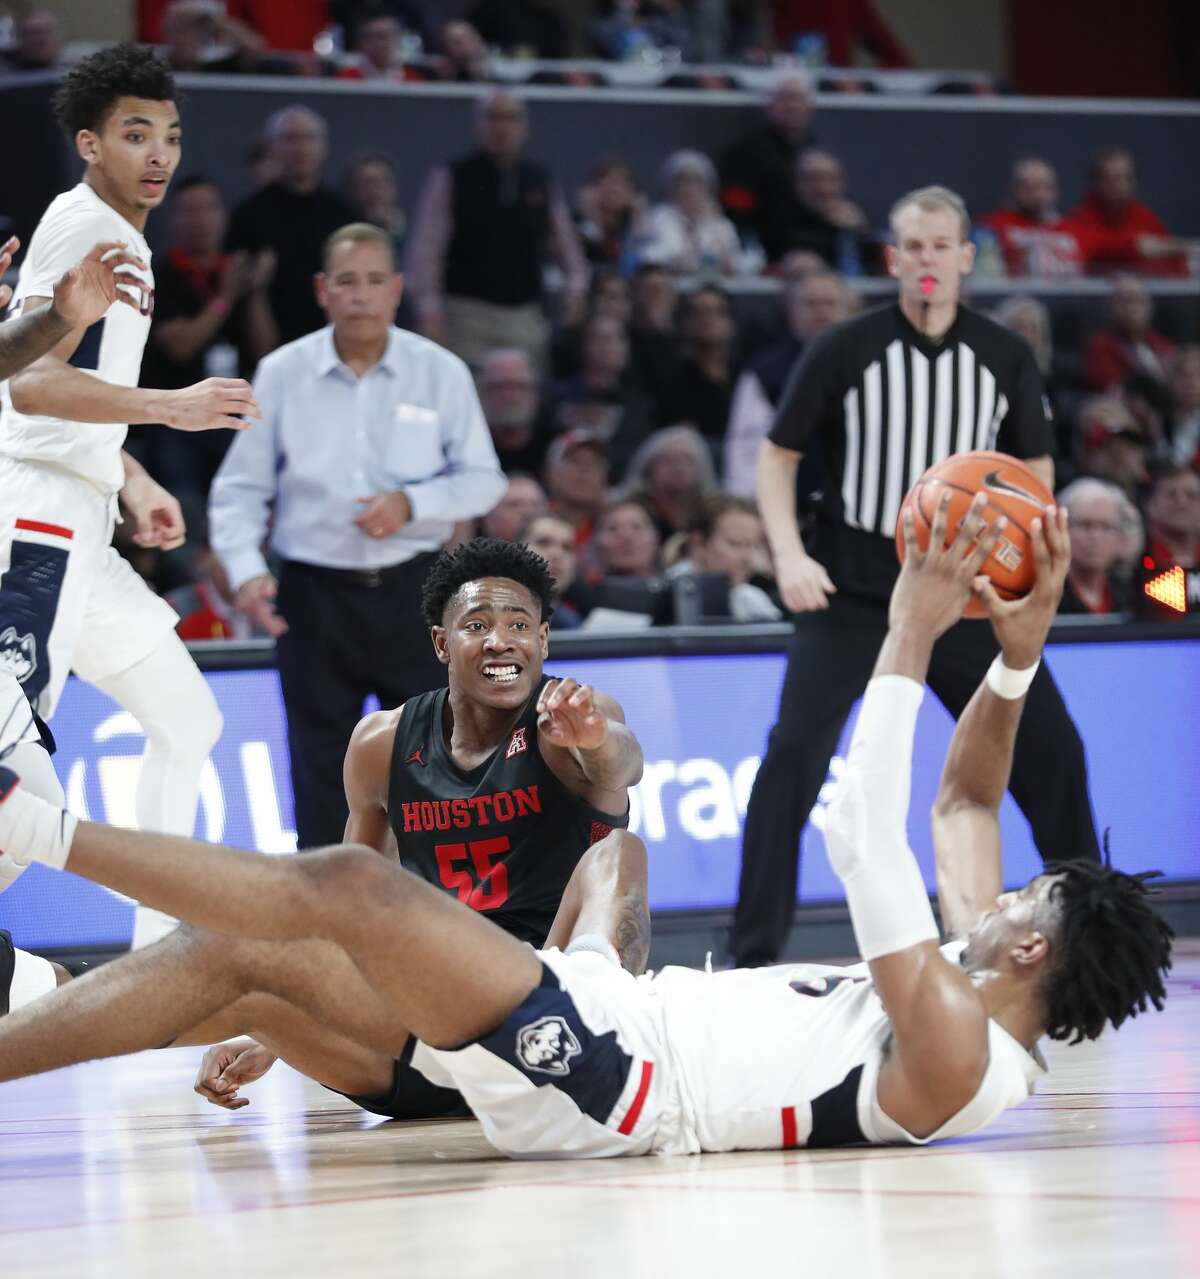 Houston Cougars center Brison Gresham (55) looks at Connecticut Huskies forward Isaiah Whaley (5) as he tried to pass the ball from the floor during the second half of an NCAA basketball game at the Fertitta in Houston, Thursday, Jan. 23, 2020.